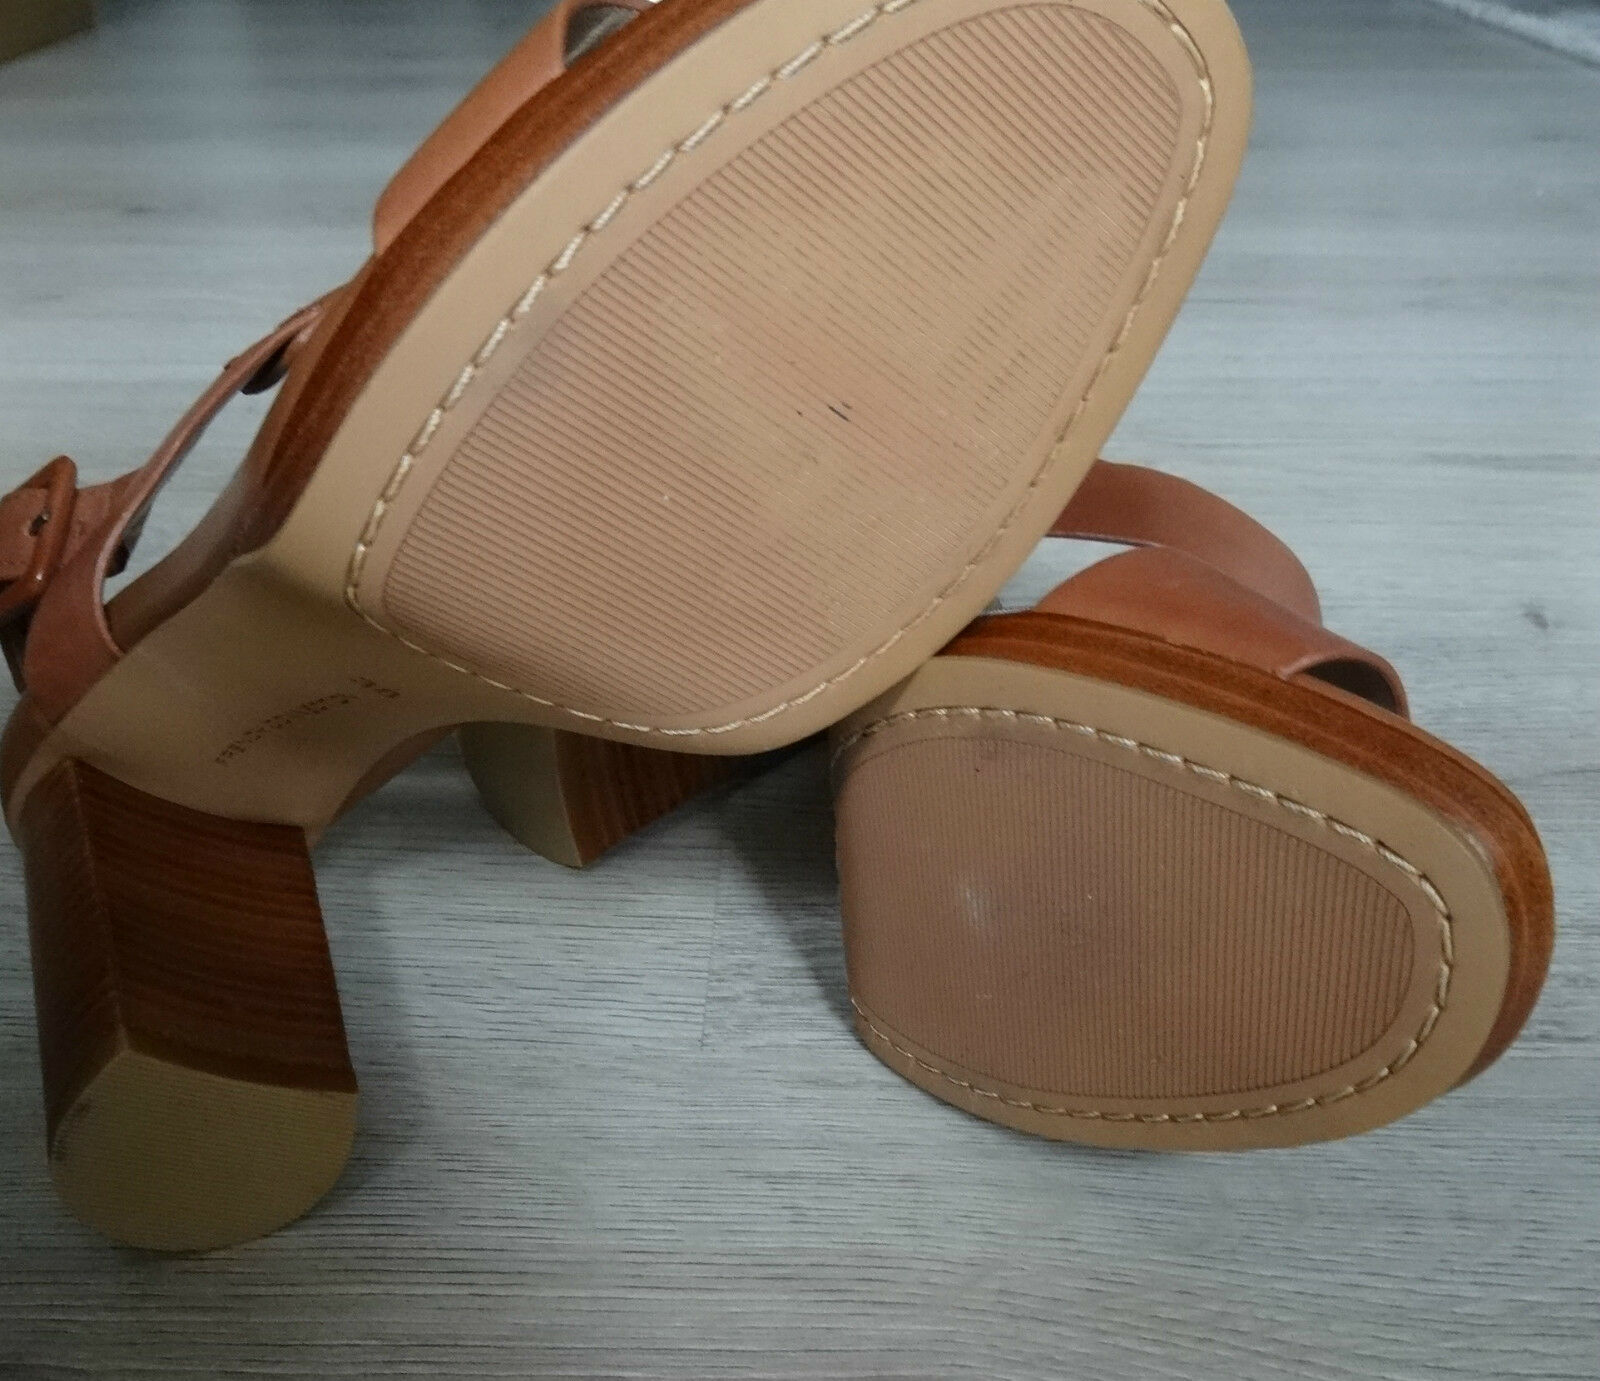 French Connection Connection French Sandalen braun 38 NEU 469333